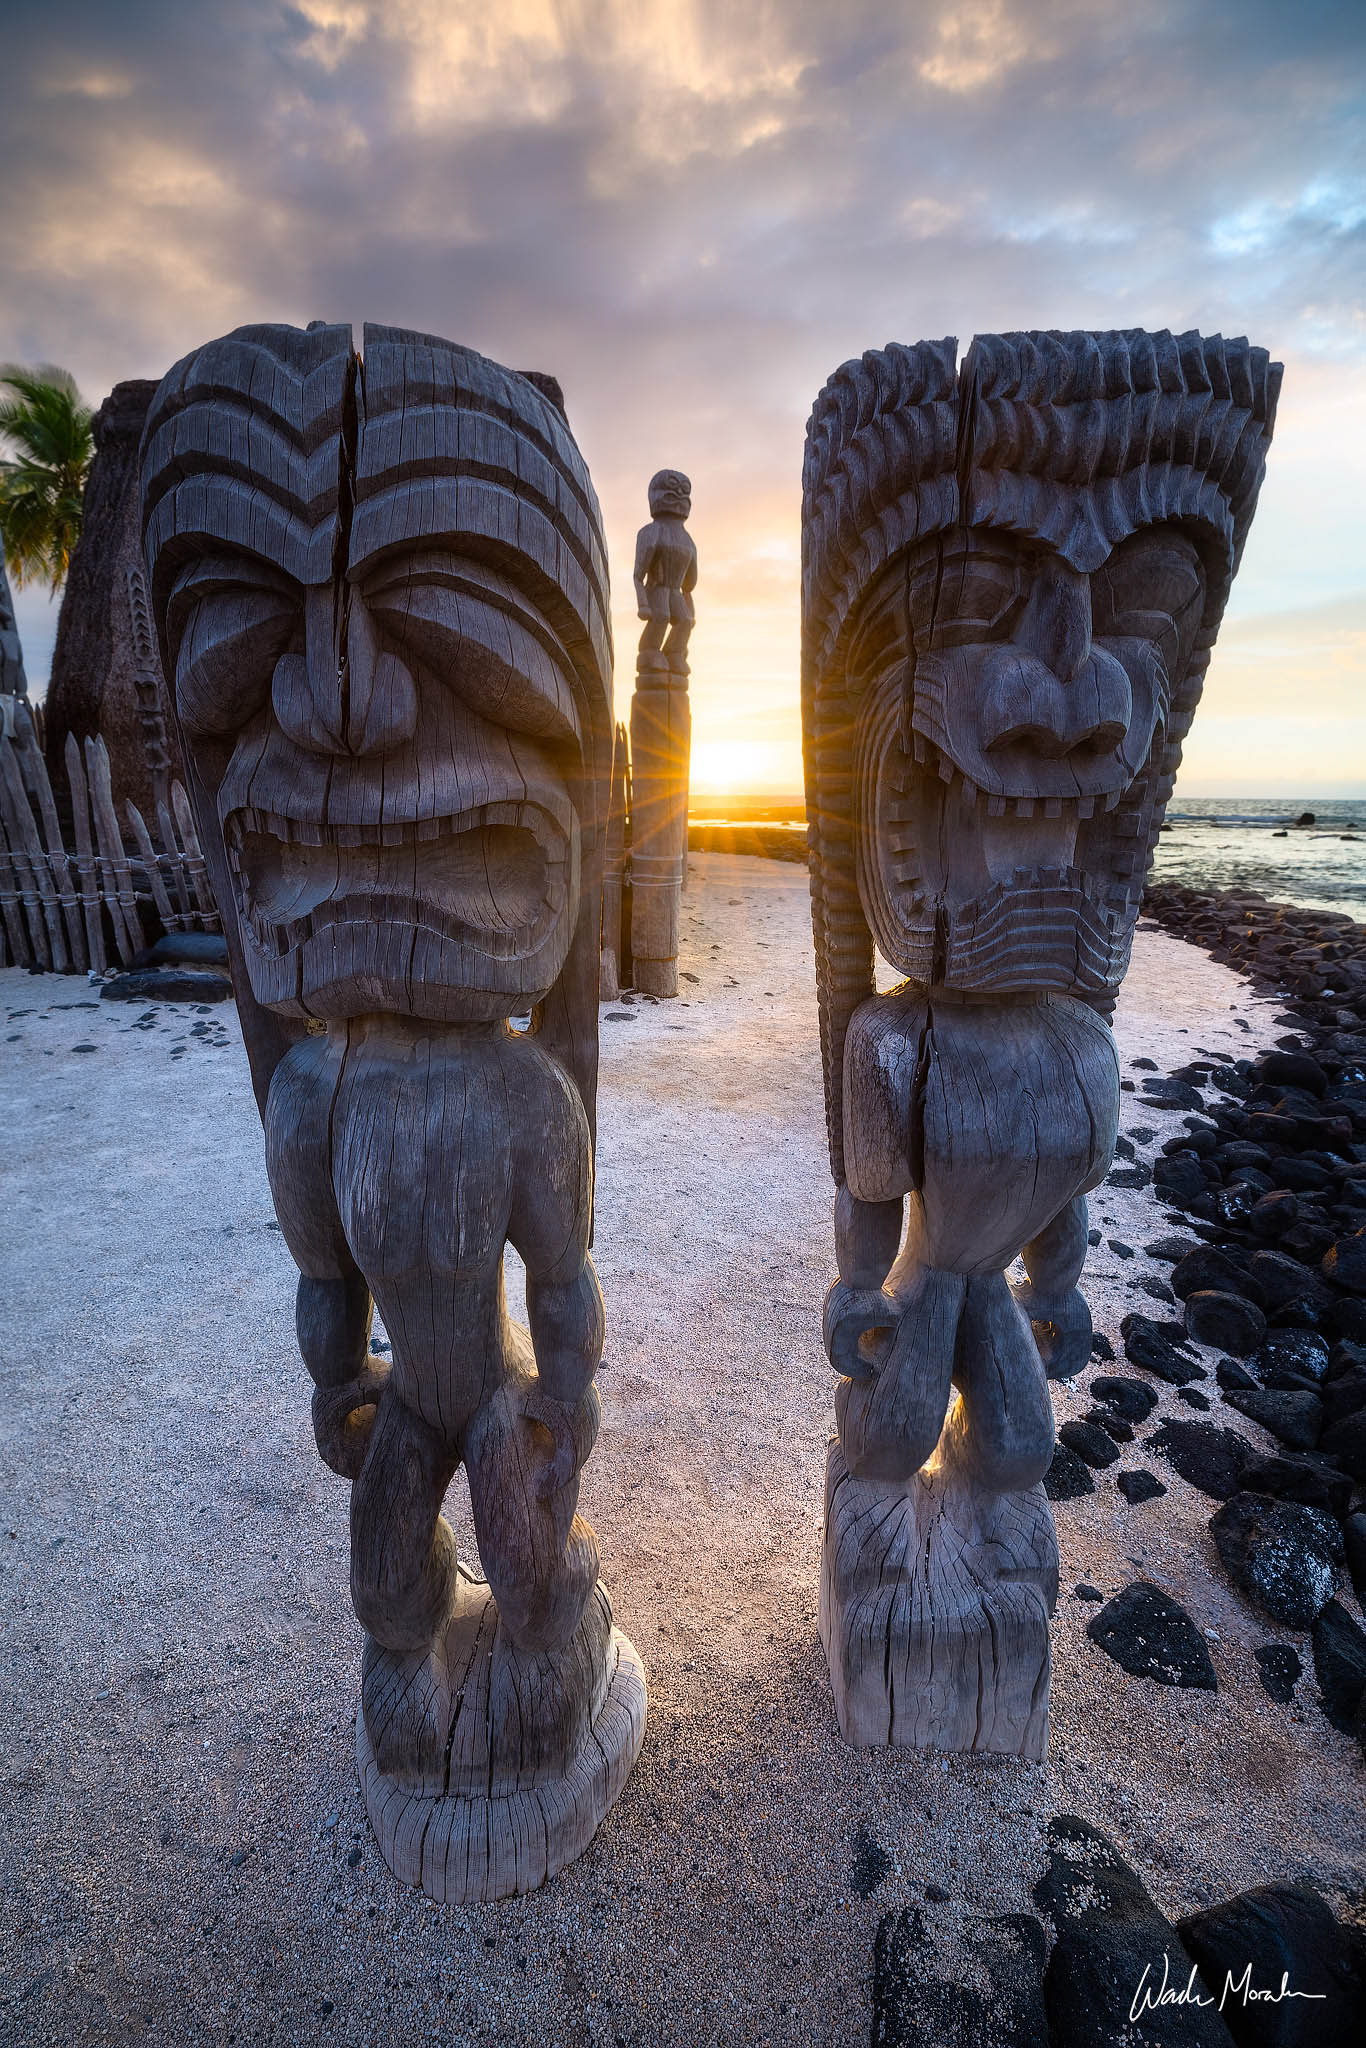 In this photo, I caught the sun setting in between two kiʻi statues in the City of Refuge National Historic Park. This was a...